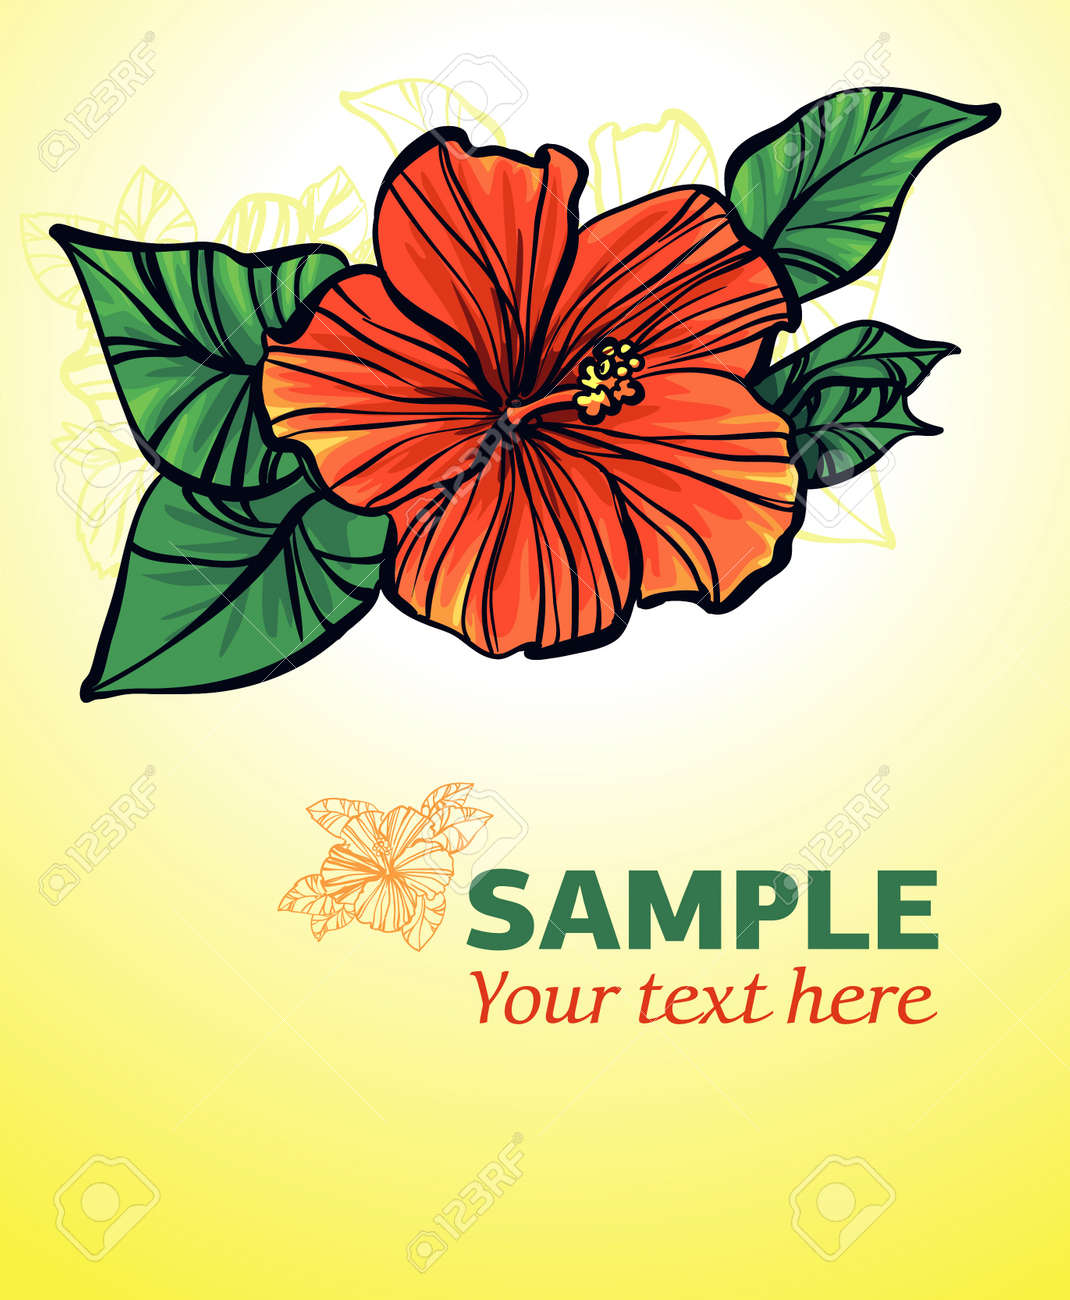 yellow background with red flower - 12933262